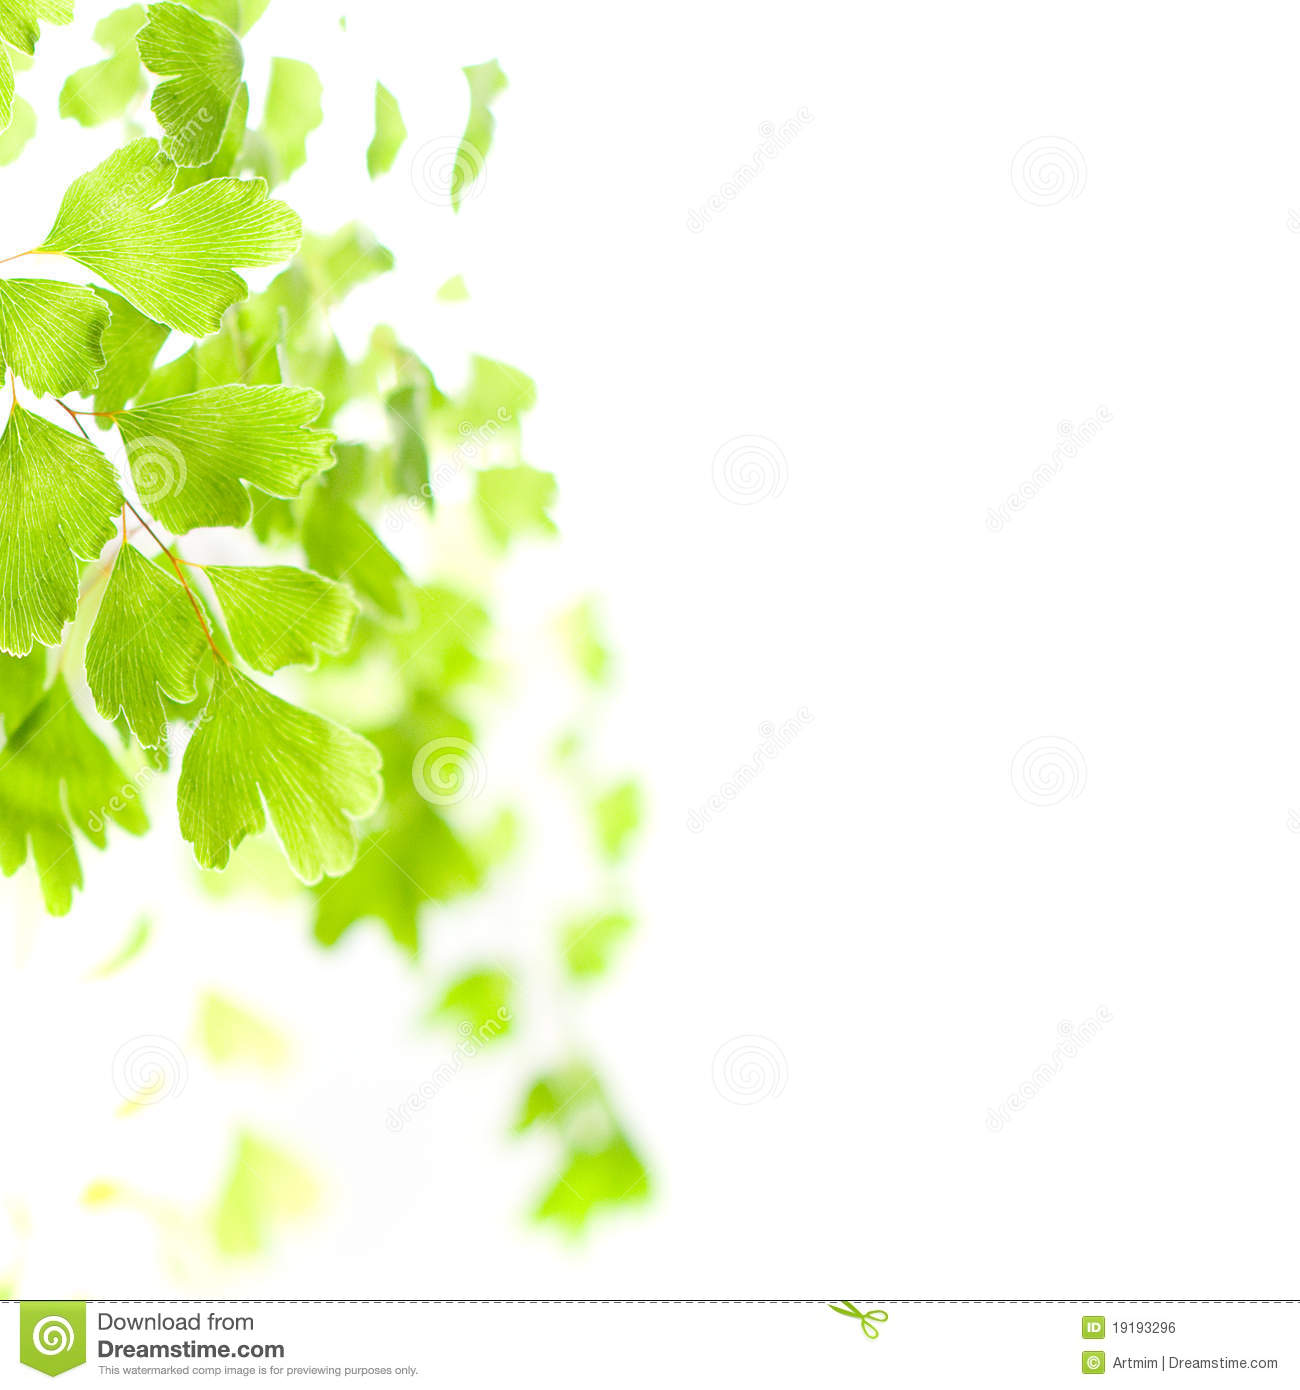 green%20leaves%20images